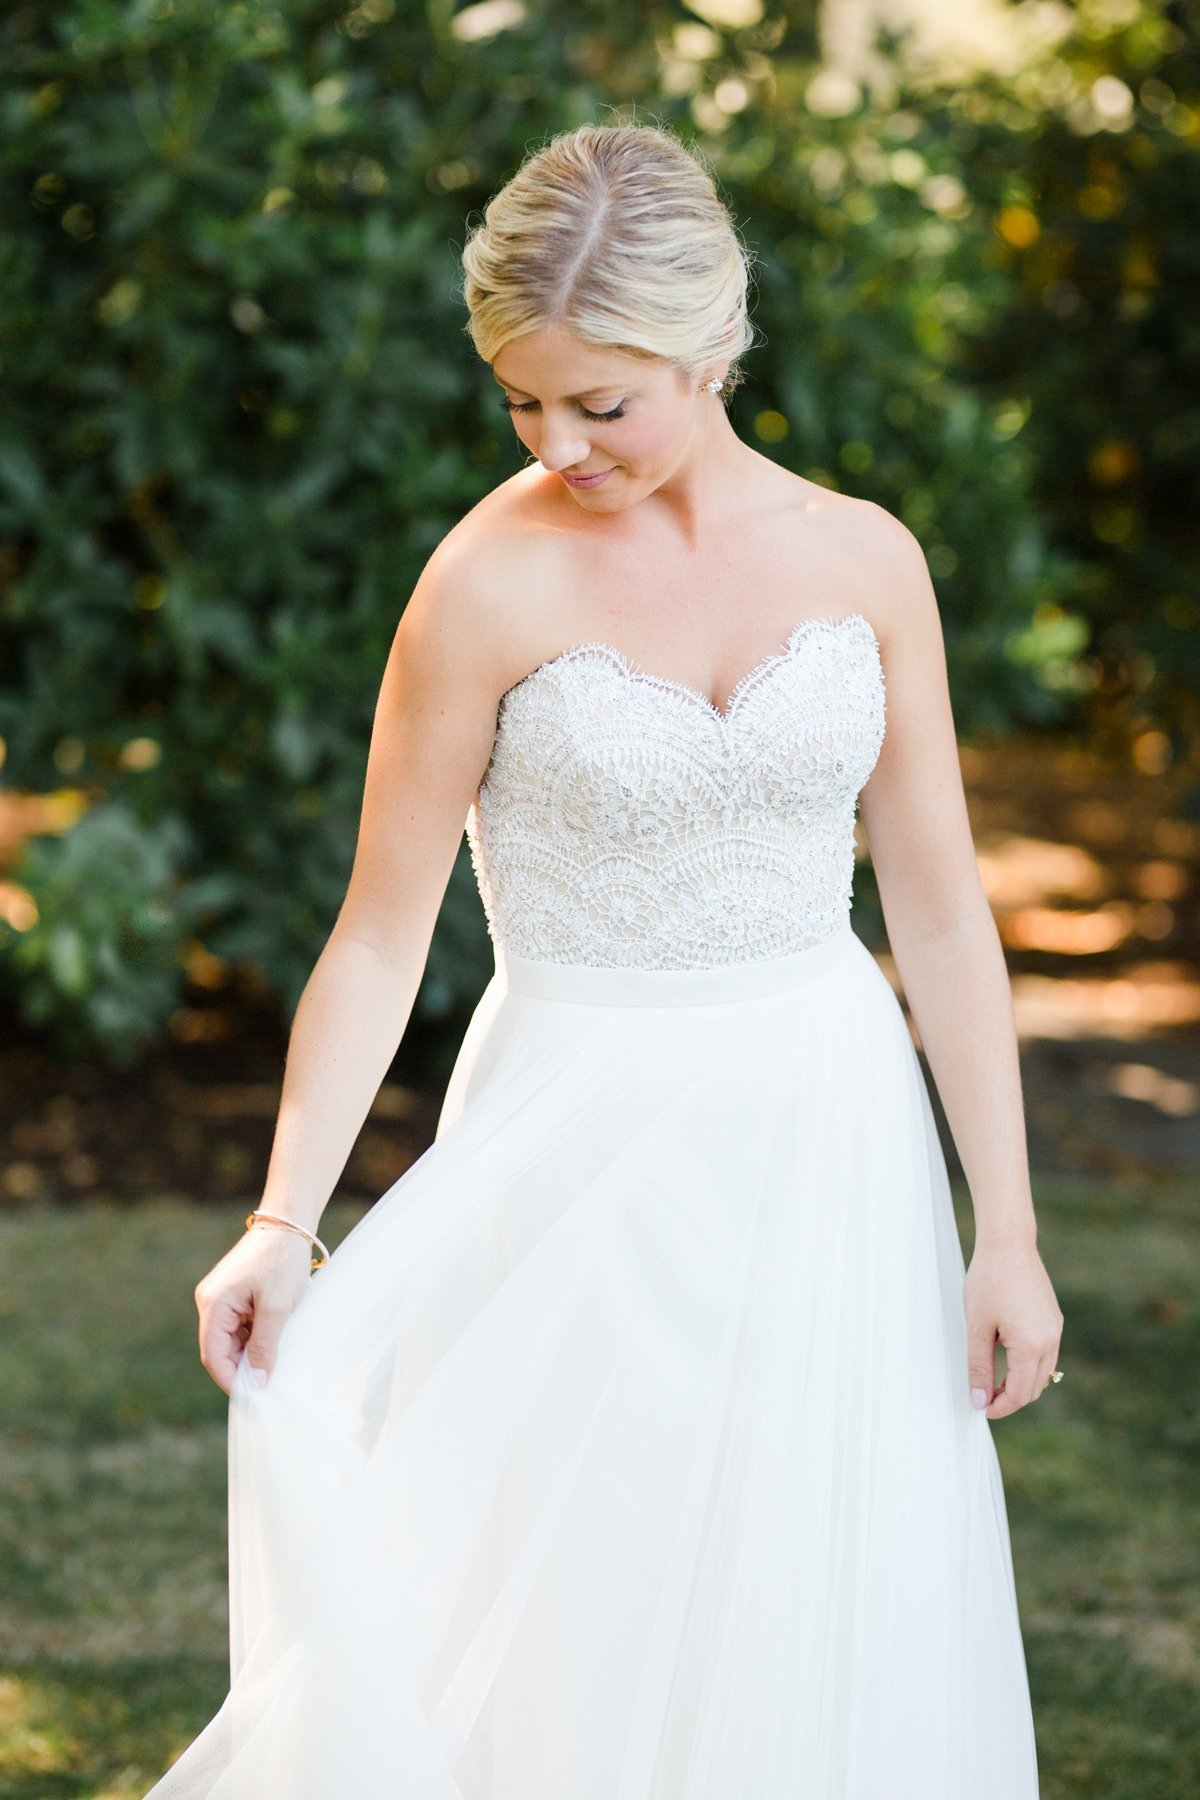 maplehurst-farm-wedding-washington-clean-fresh-seattle-photographer-cameron-zegers121